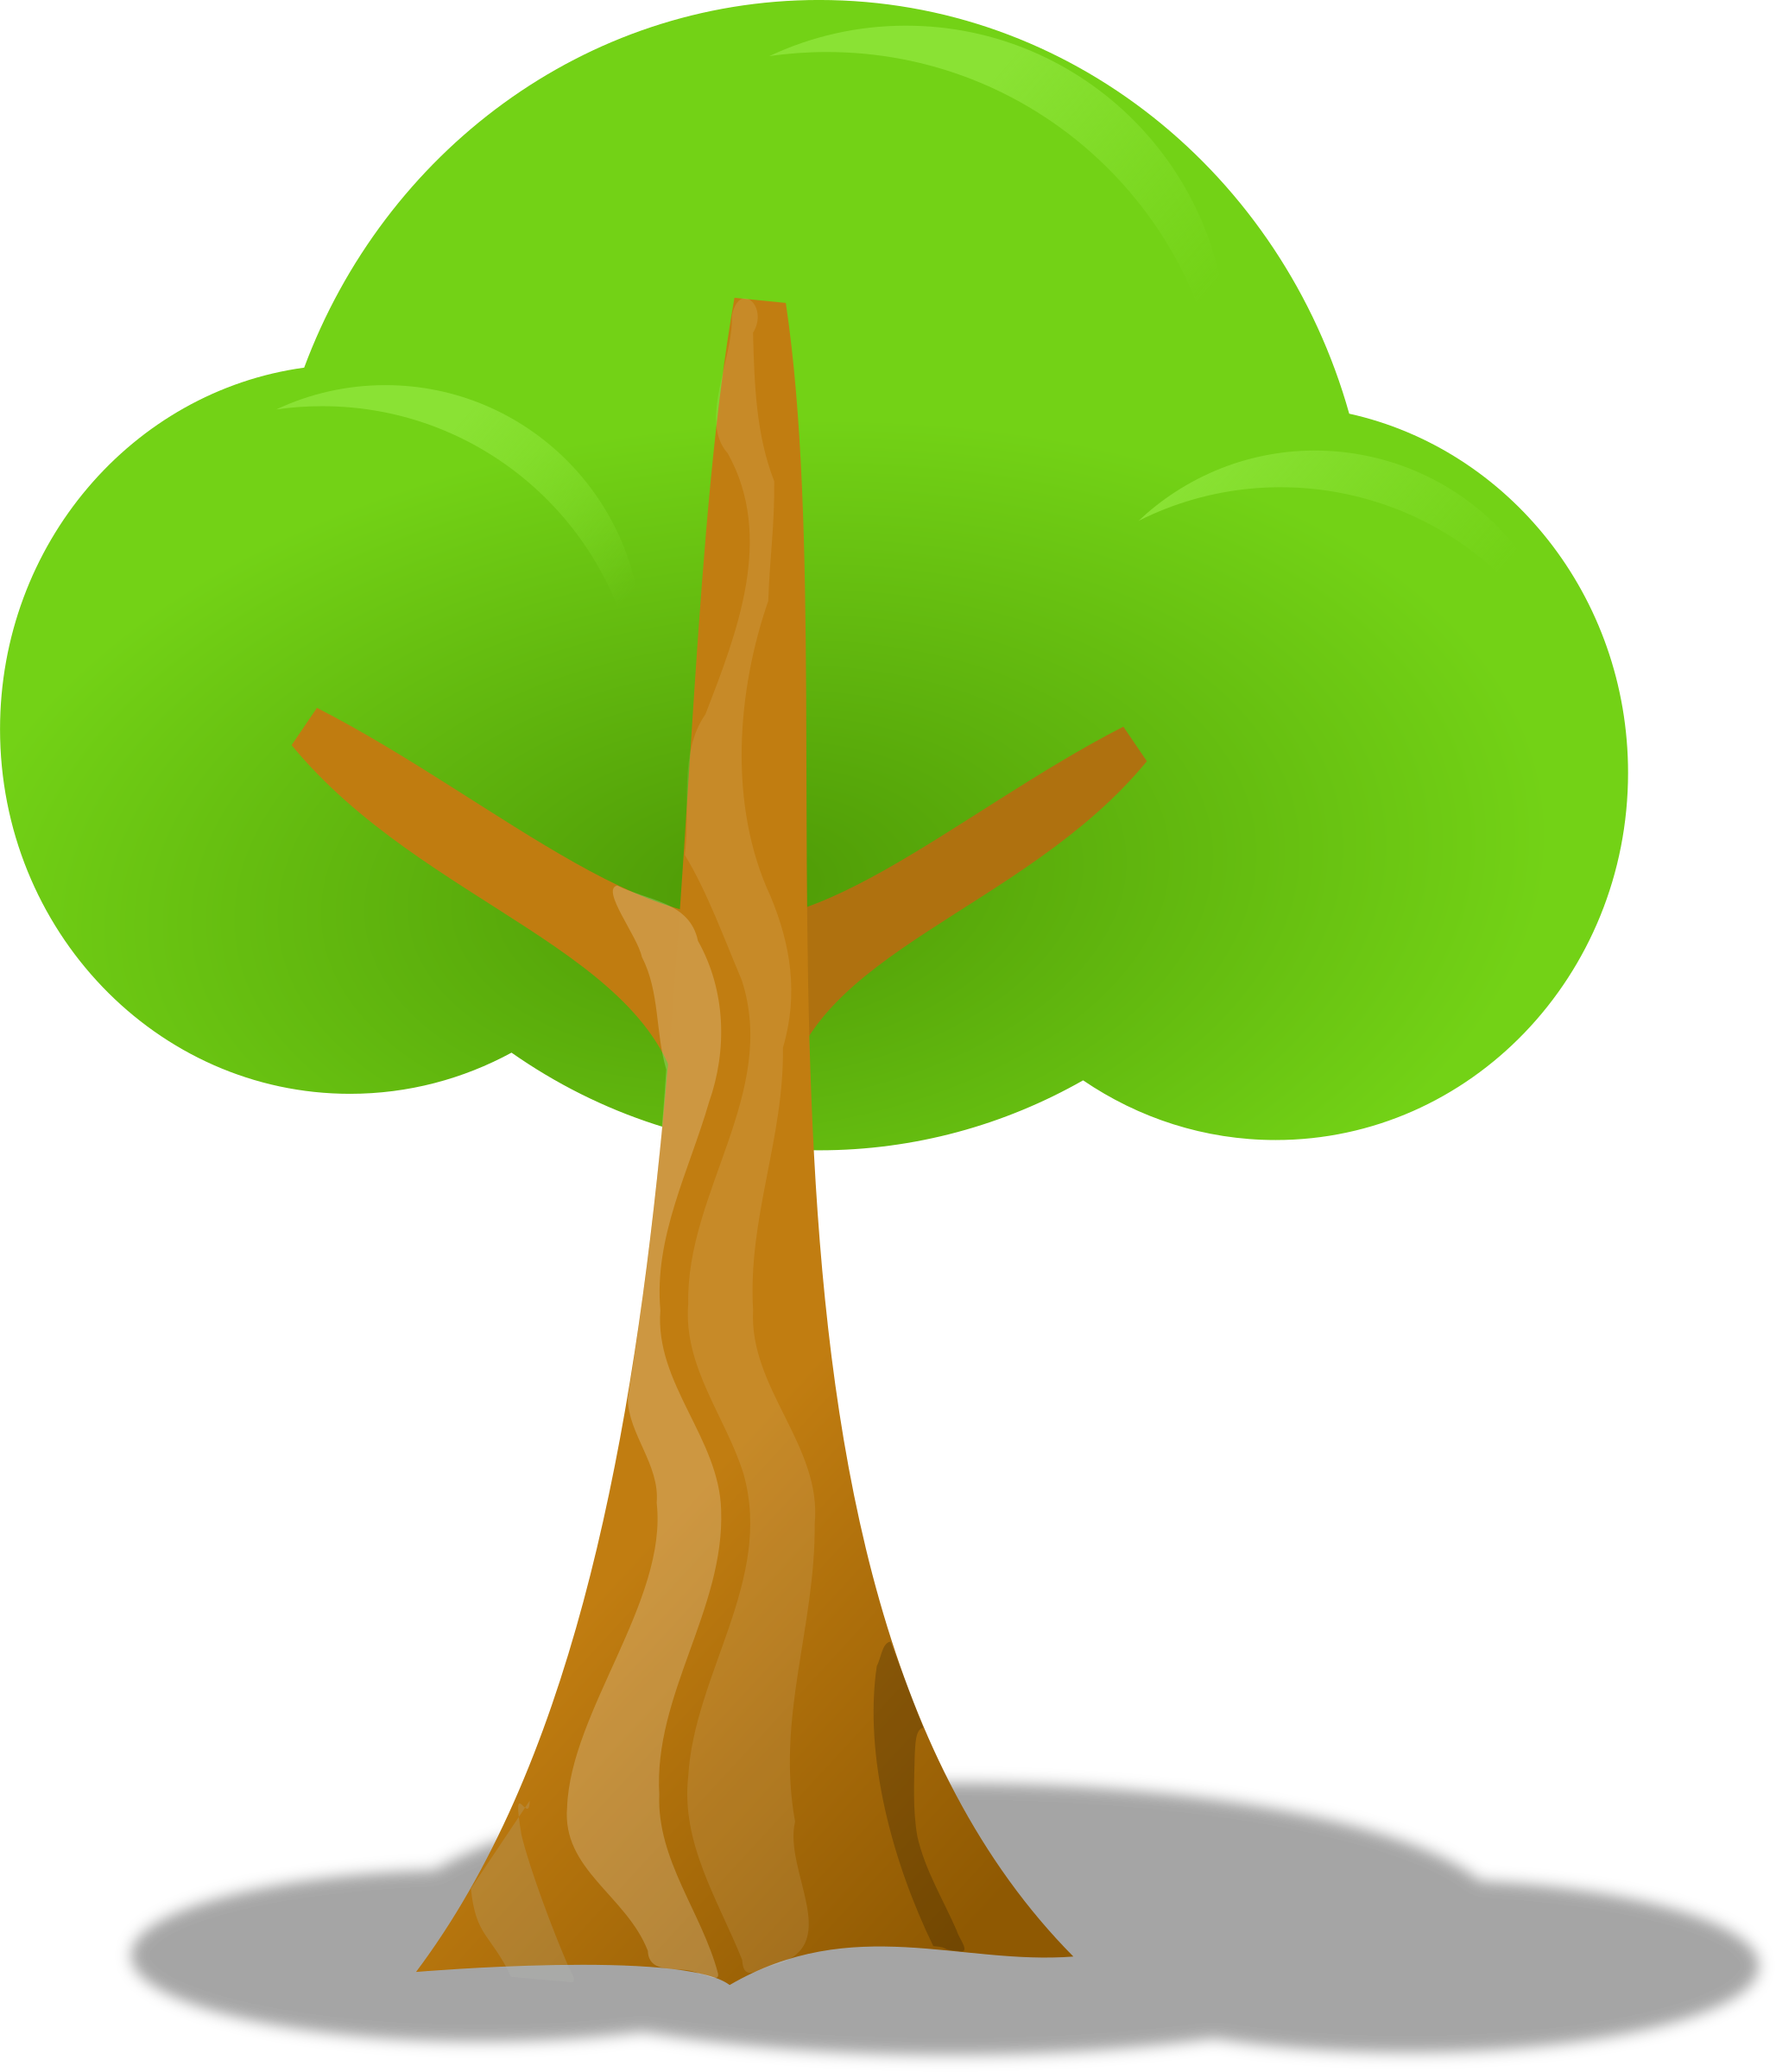 Big image png. Tree clipart simple